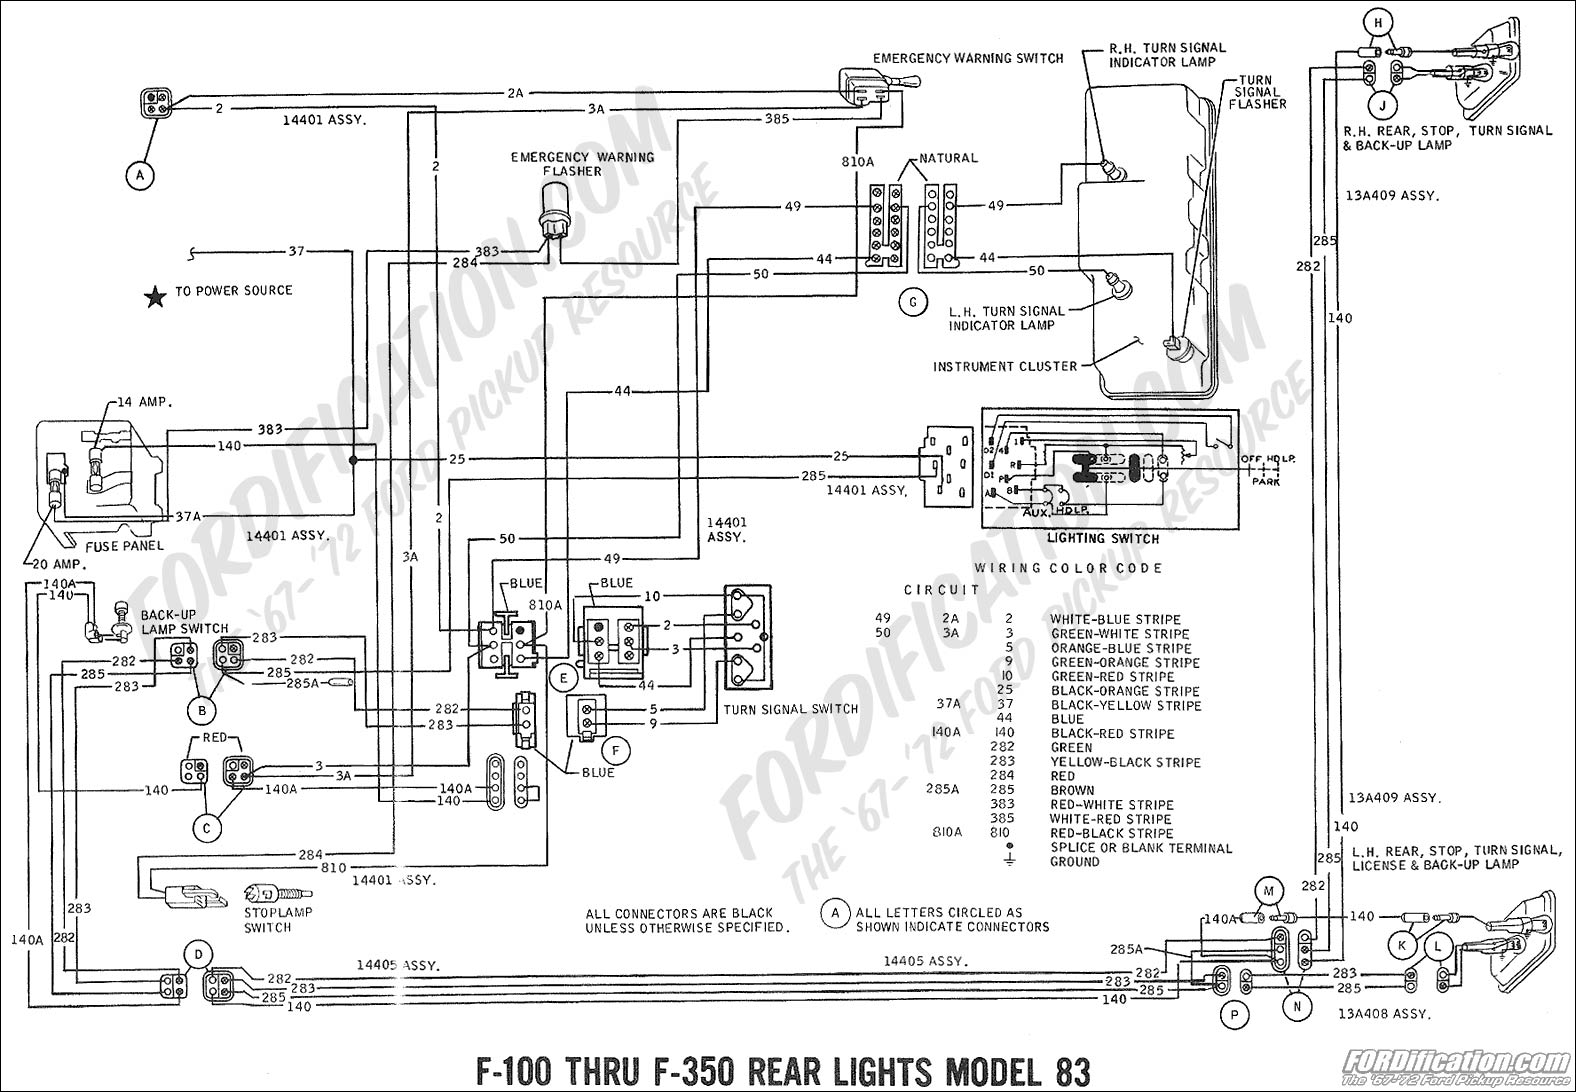 Ford Truck Technical Drawings and Schematics - Section H - Wiring Diagrams | Ford F250 Wiring Diagram |  | FORDification.com